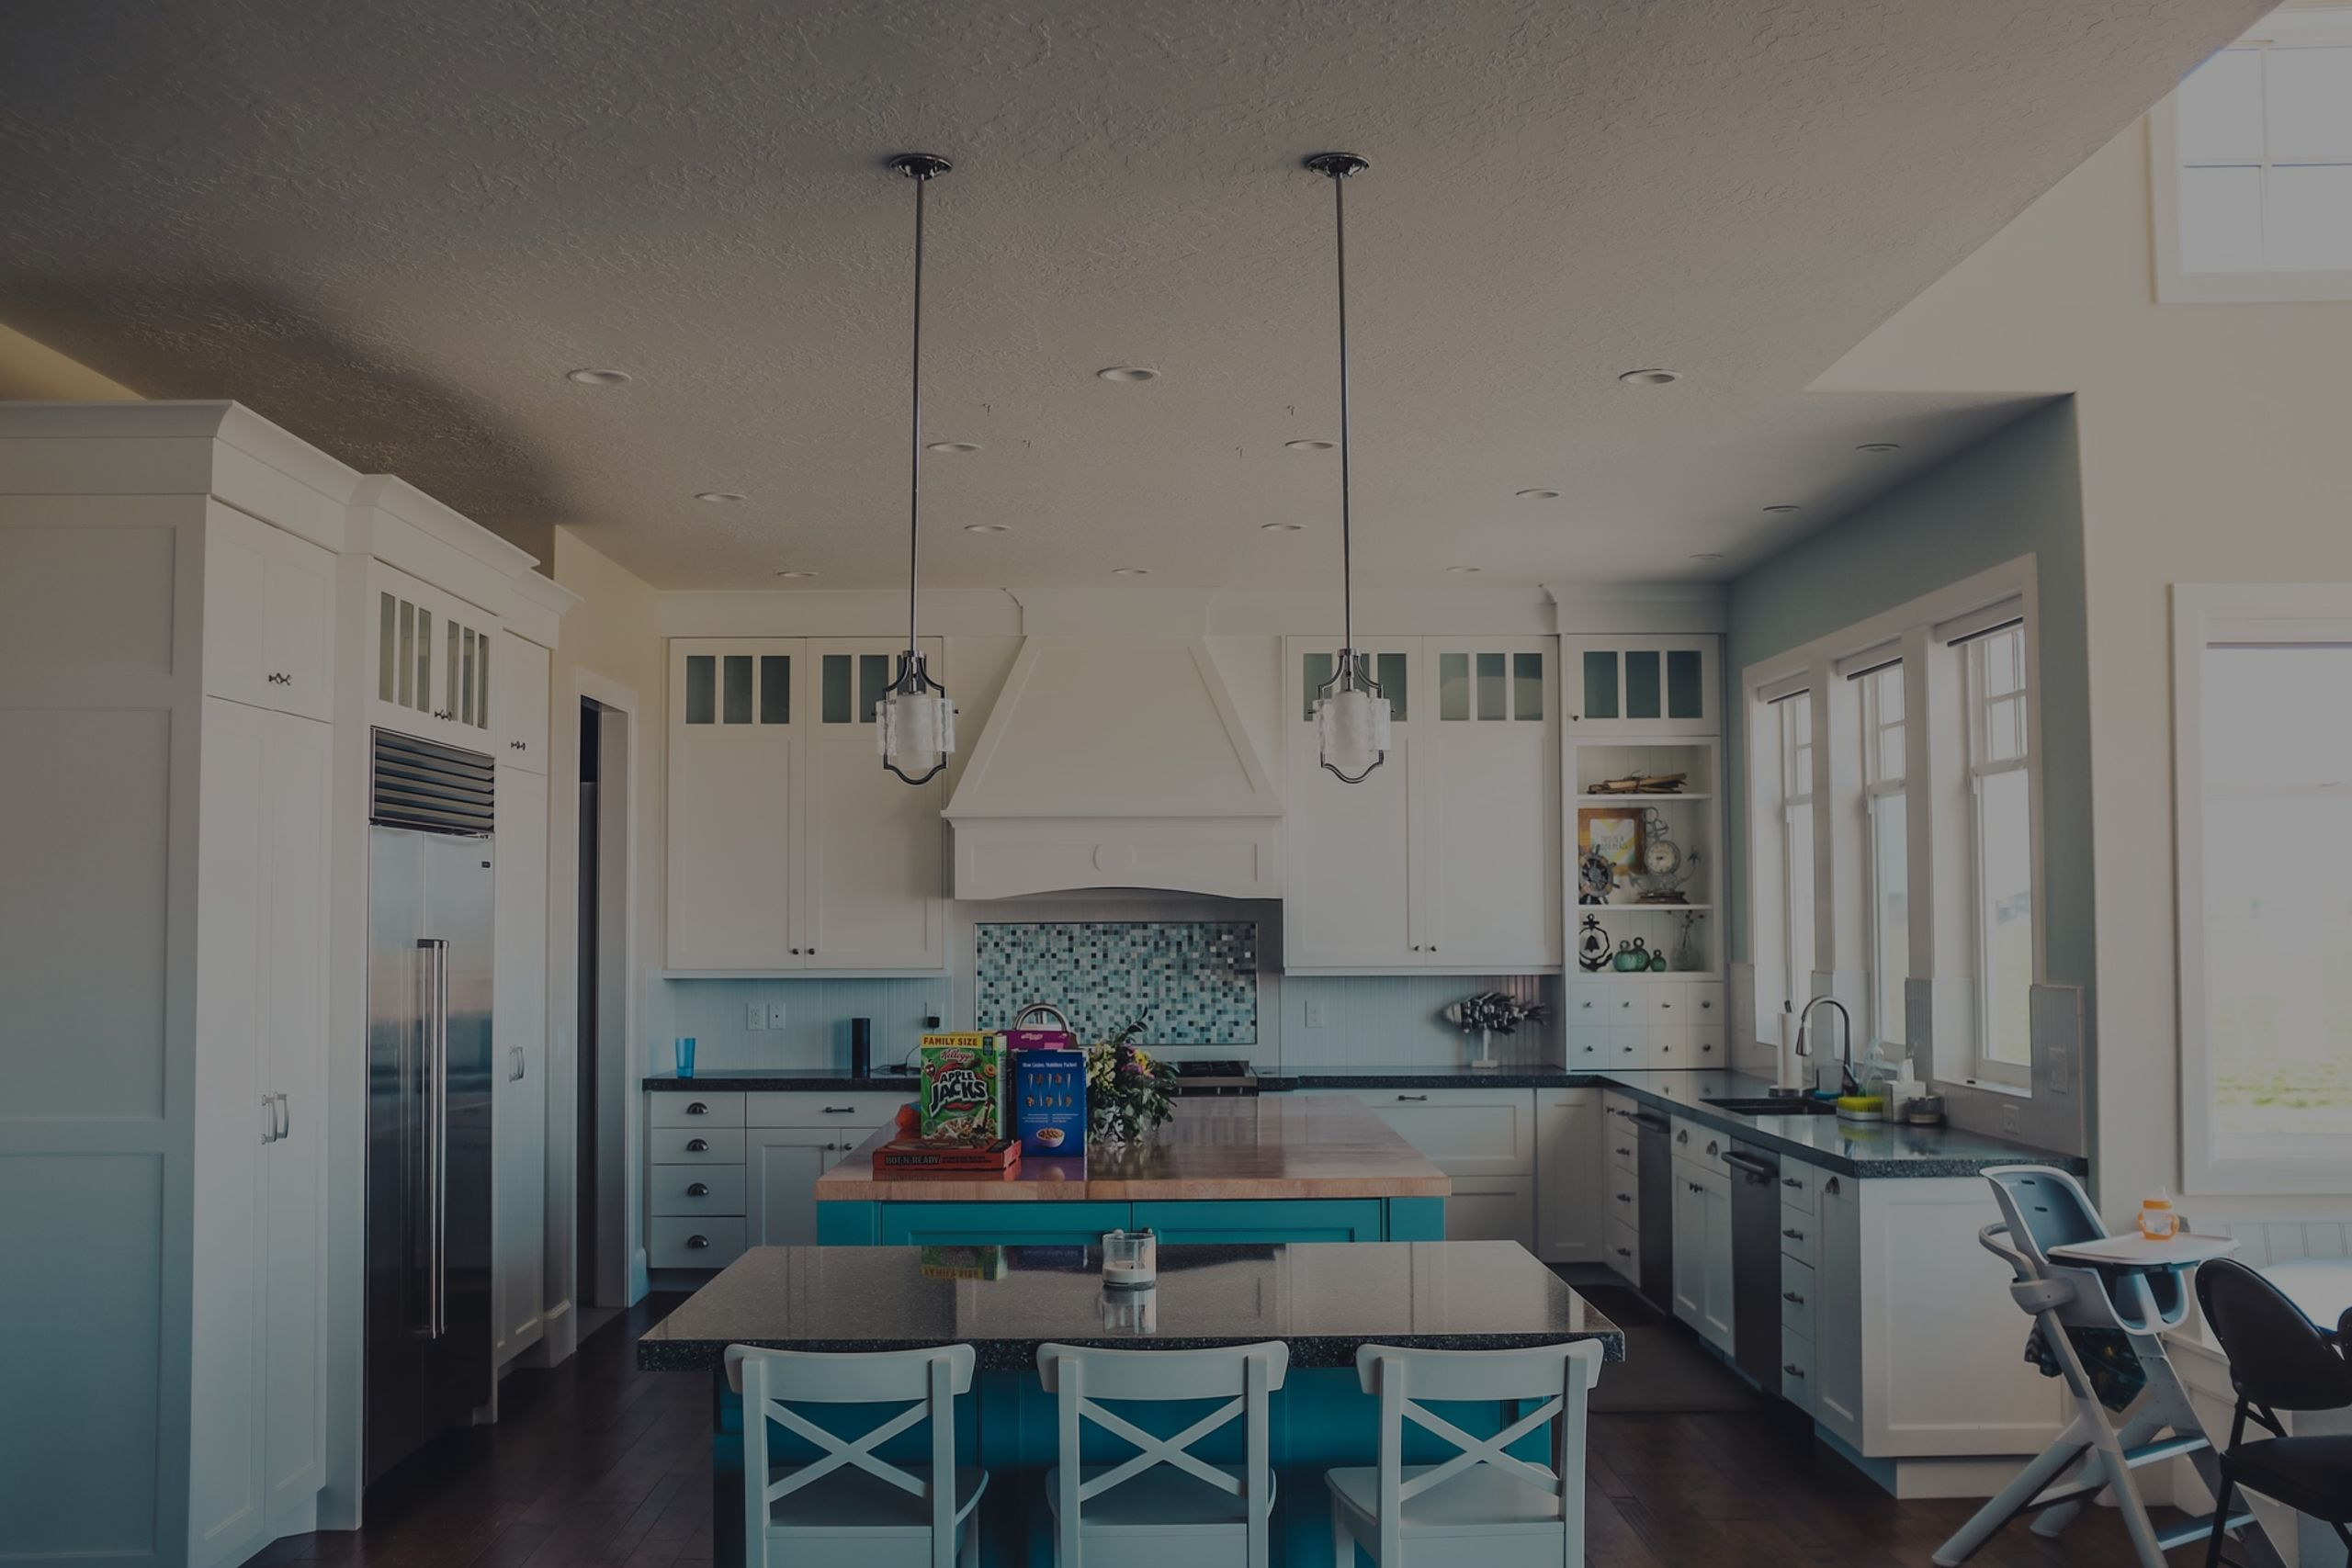 5 Gorgeous Kitchen Trends That Won't Disappoint